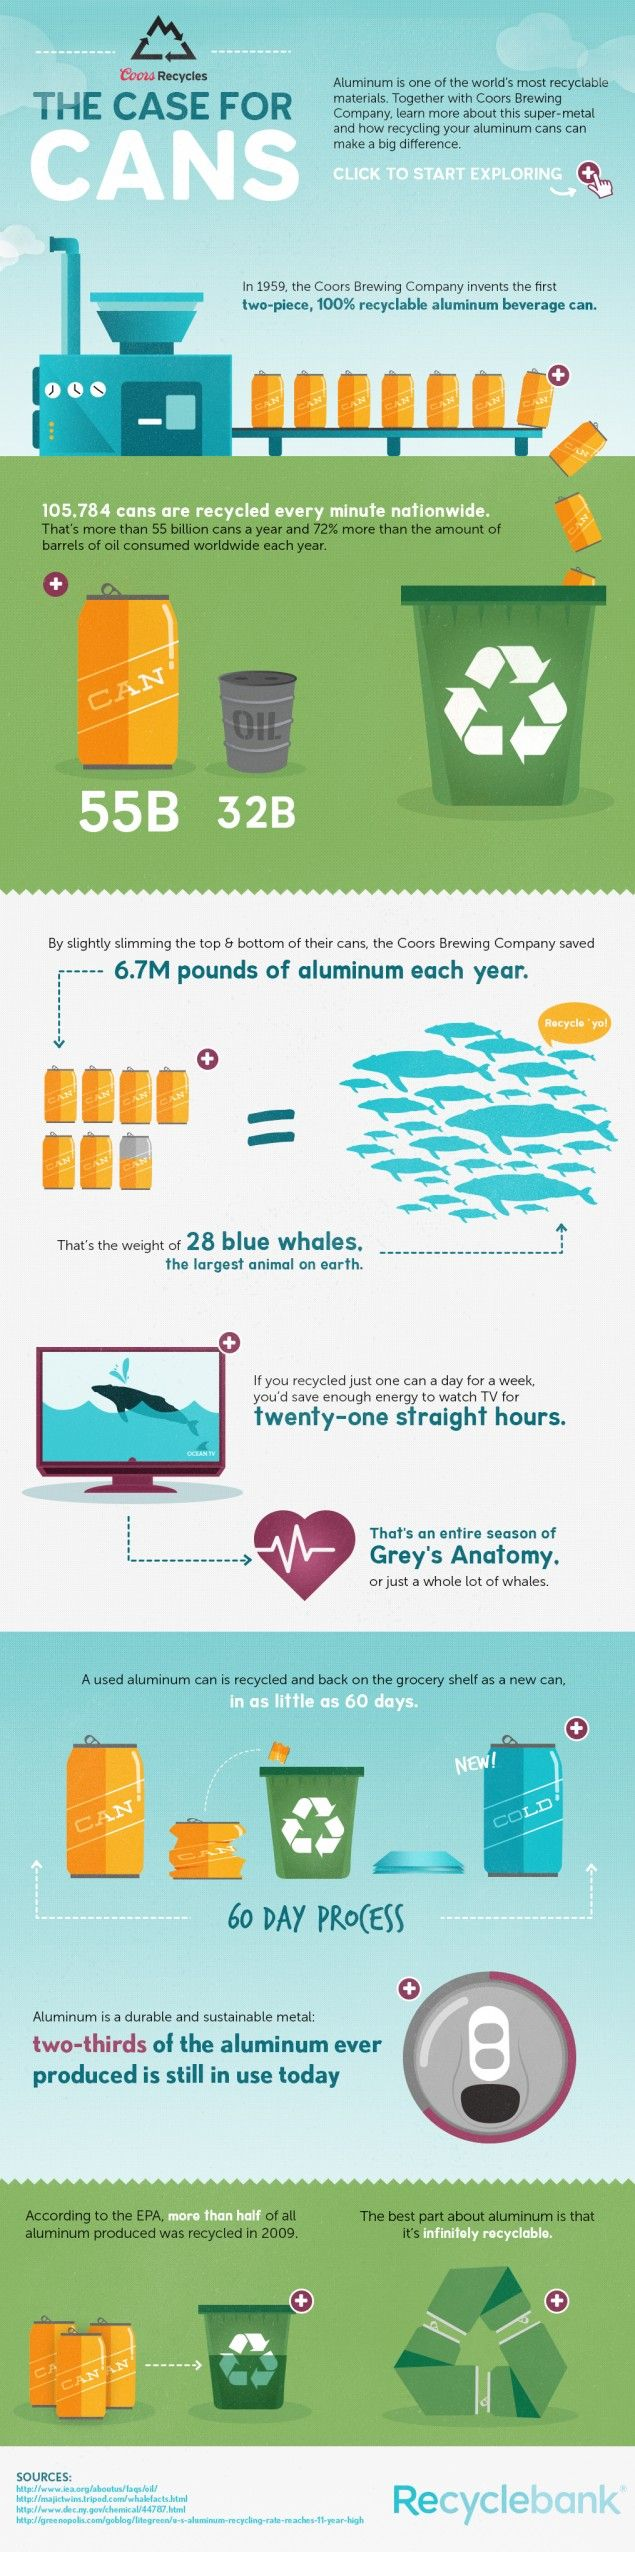 Aluminum_recycling_facts_infographic_recyclebank_lemonly